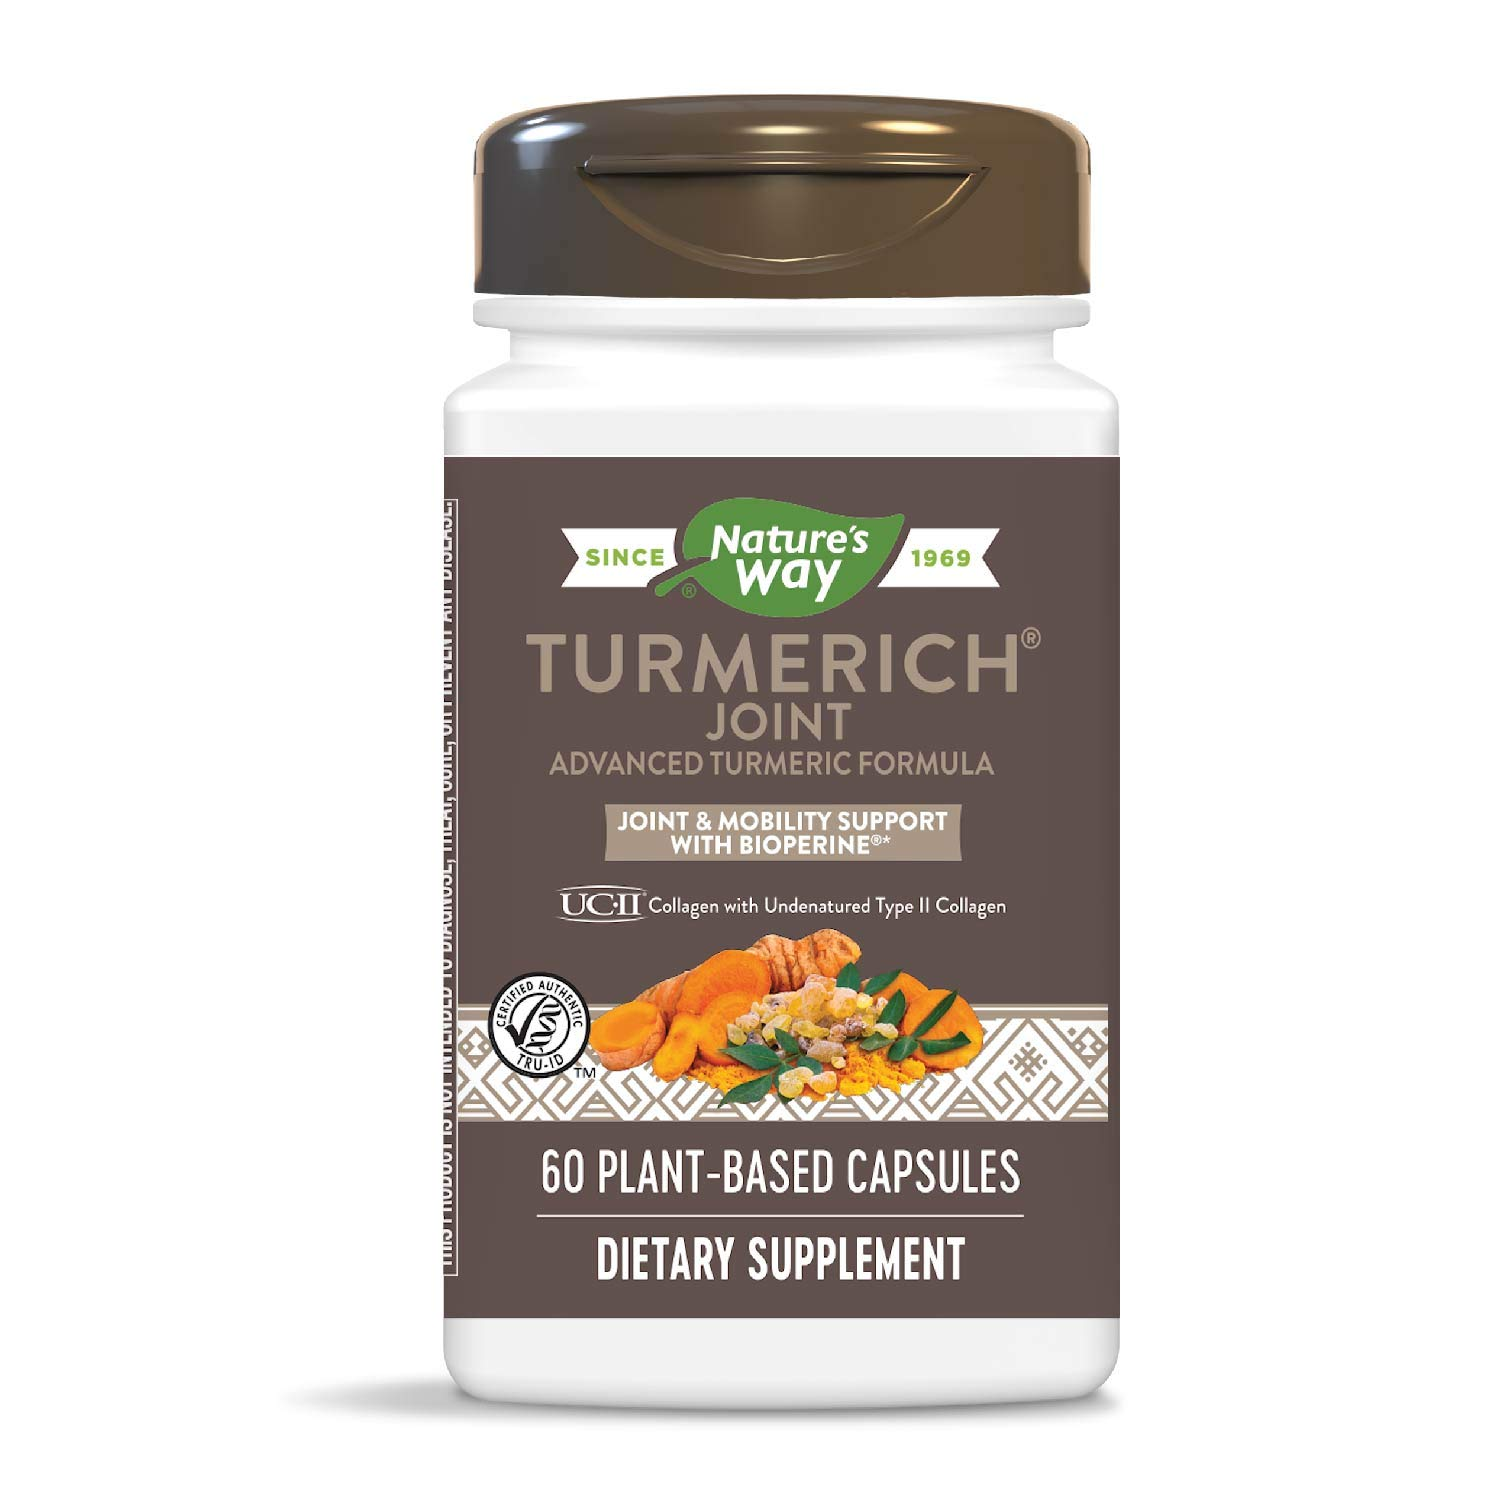 Nature s Way TurmeRich Joint Advanced Trip-Action Joint and Mobility Formula with BioPerine for Turmeric Bioavailability, 60 Plant-Based Capsules